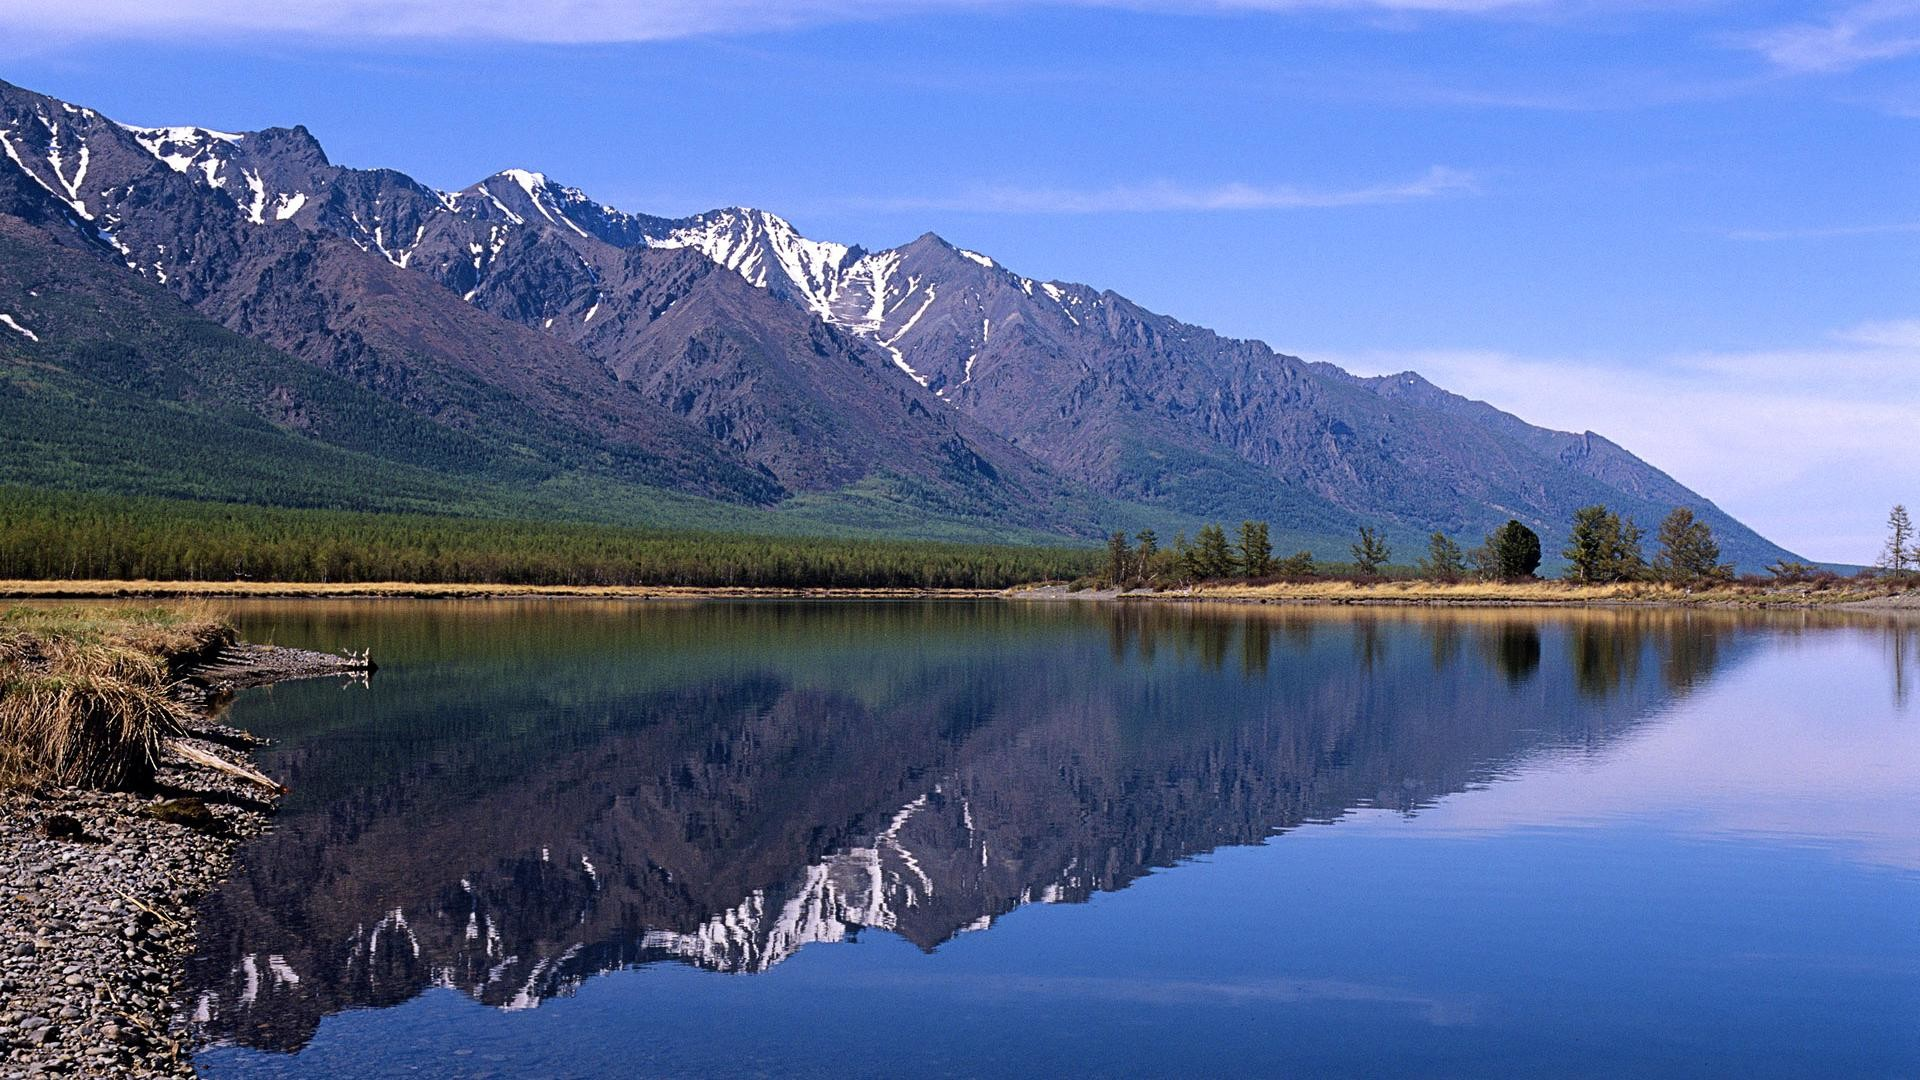 Cool Mountains and rivers reflection wallpaper wide wallpapers:1280×800,1440×900,1680×1050  –